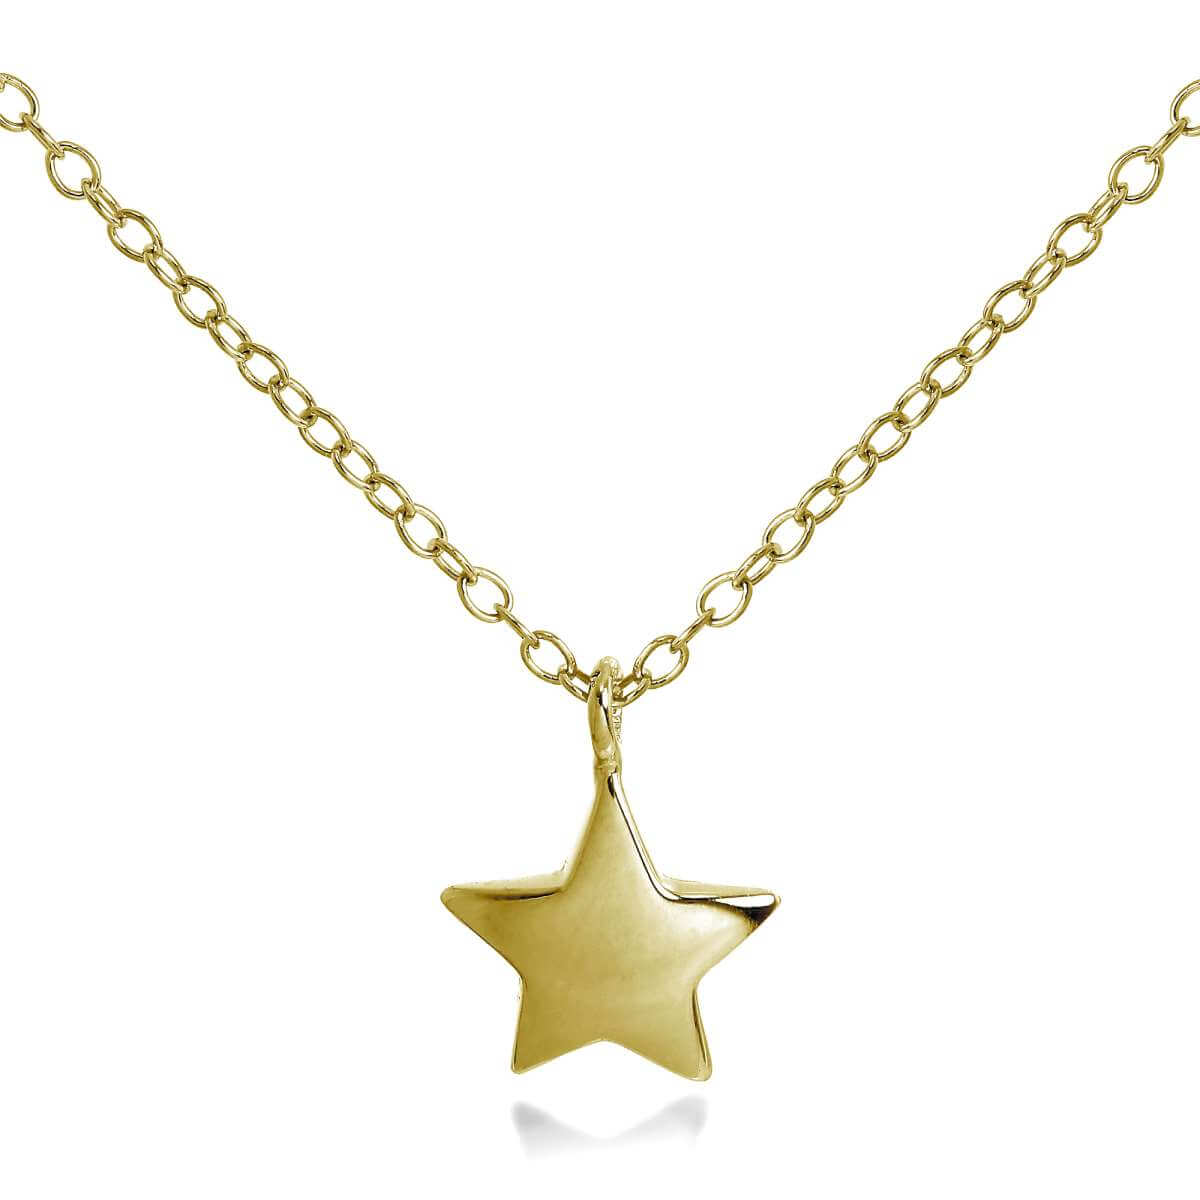 Gold Plated Sterling Silver Star Necklace 18 Inches